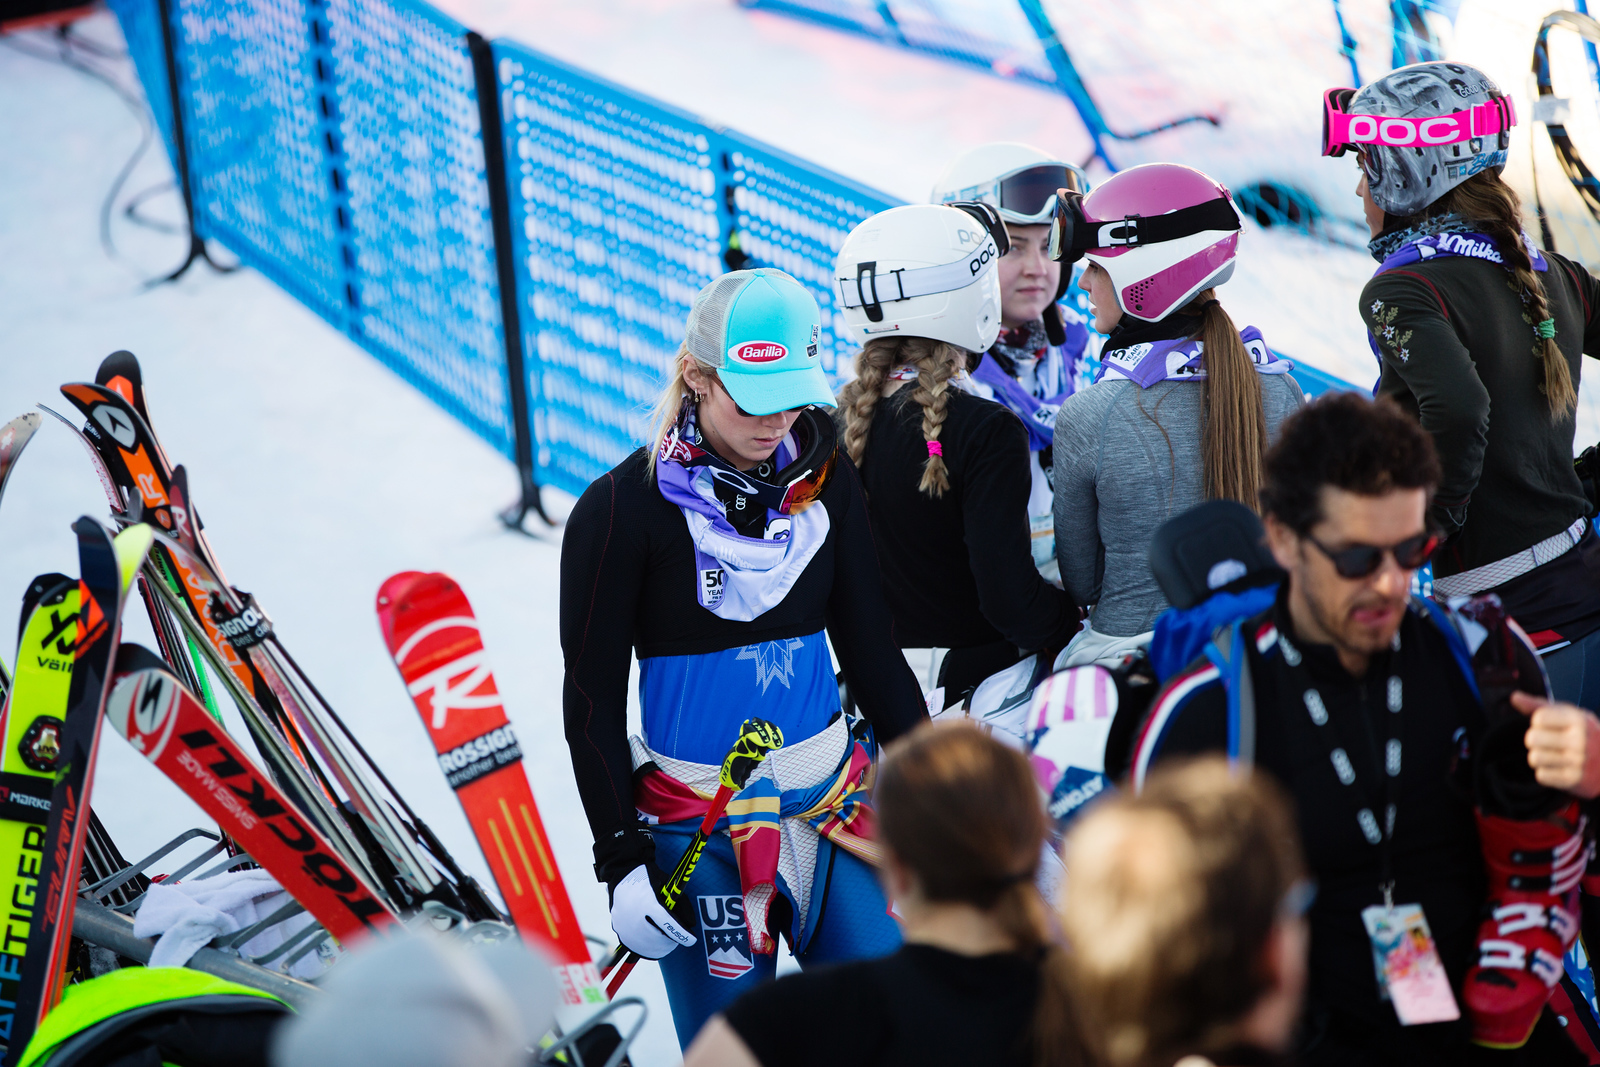 Mikaela Shiffrin GS 2017 Audi FIS Ski World Cup finals in Aspen, CO. Photo: U.S. Ski Team